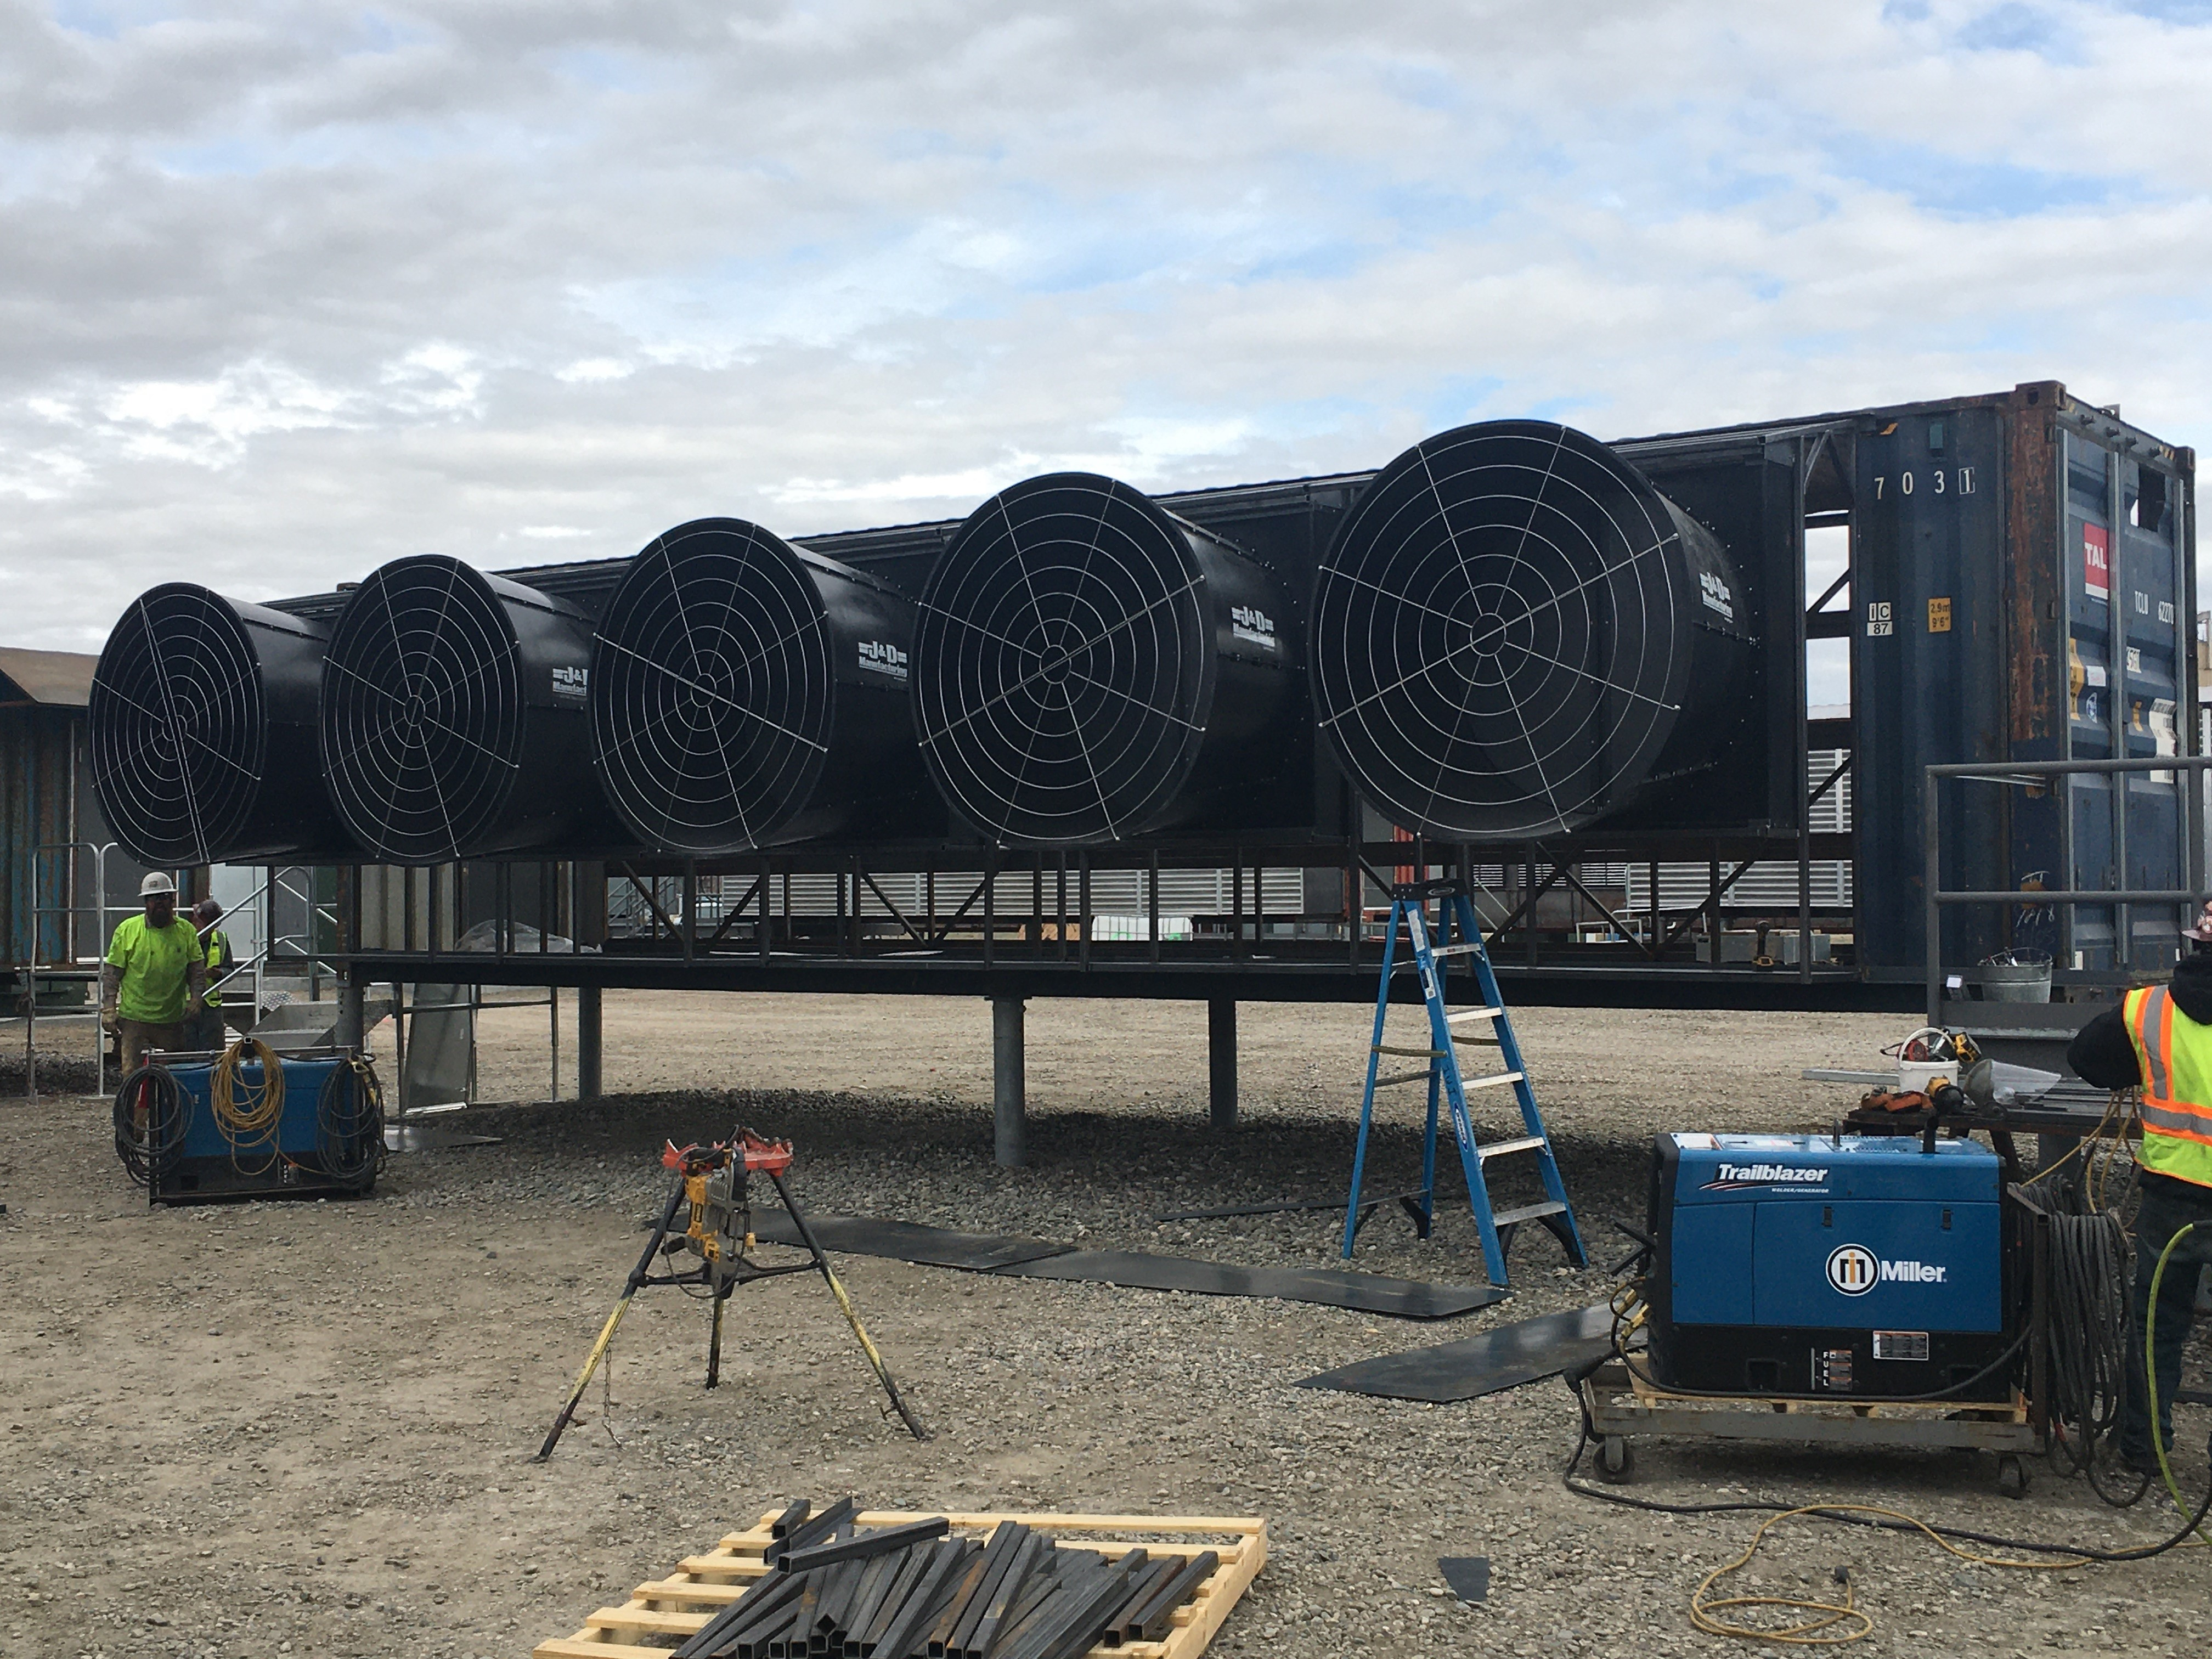 hardin-data-center-magnum-fans-mounted-into-container-factory-fans-direct-888-849-1233.jpg